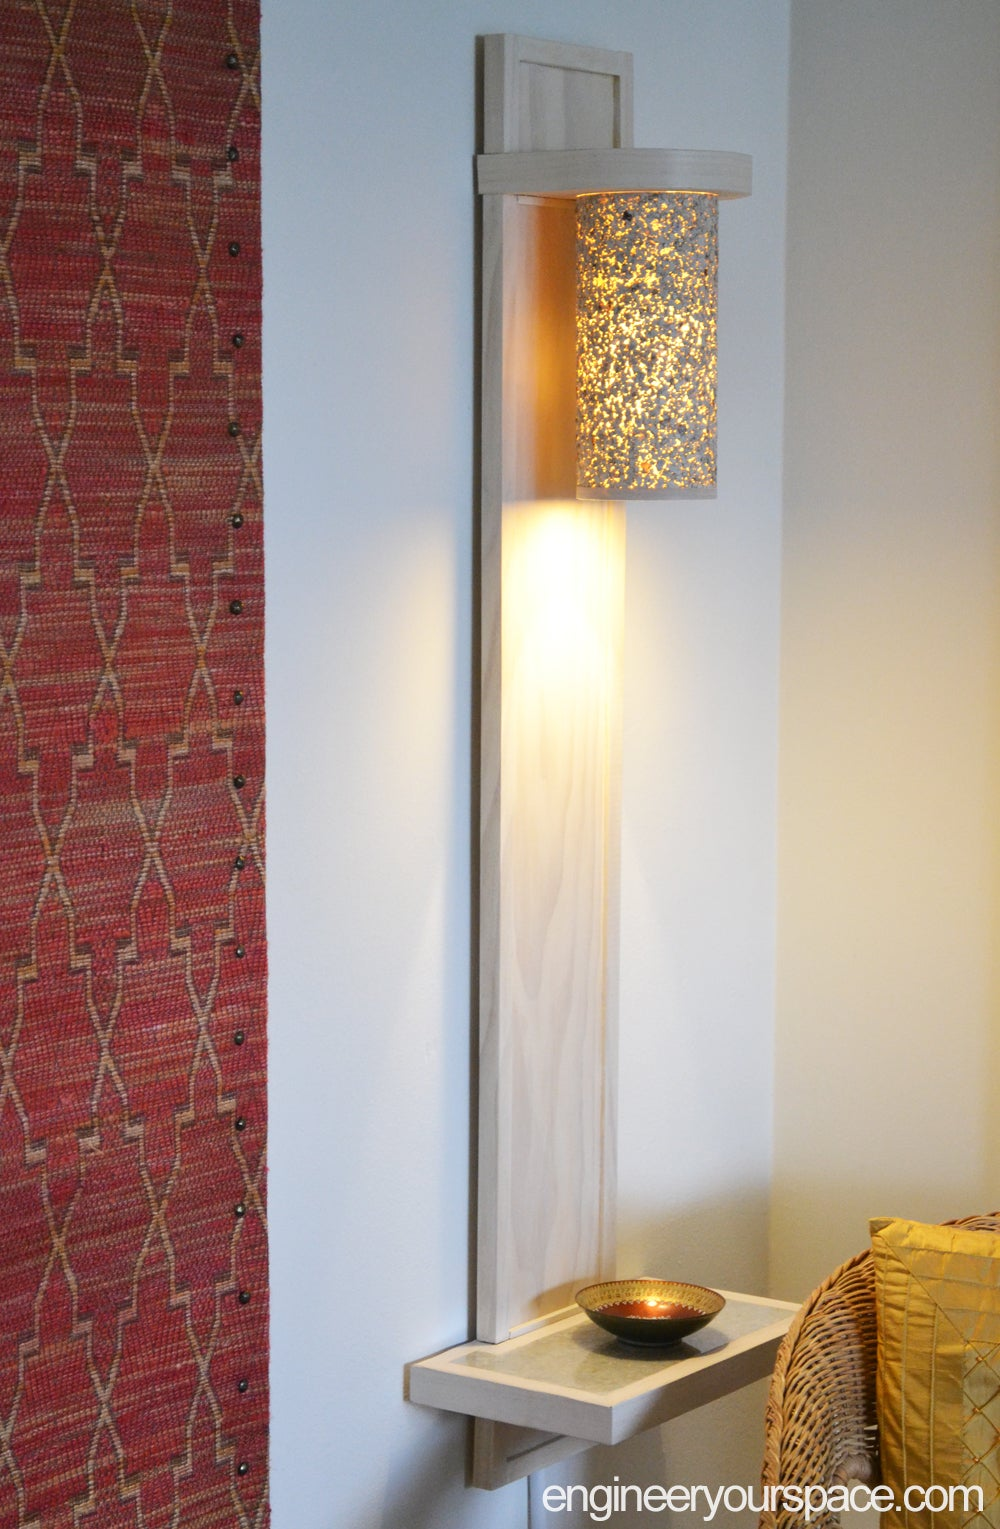 Install and Enjoy the Beautiful Lamp!